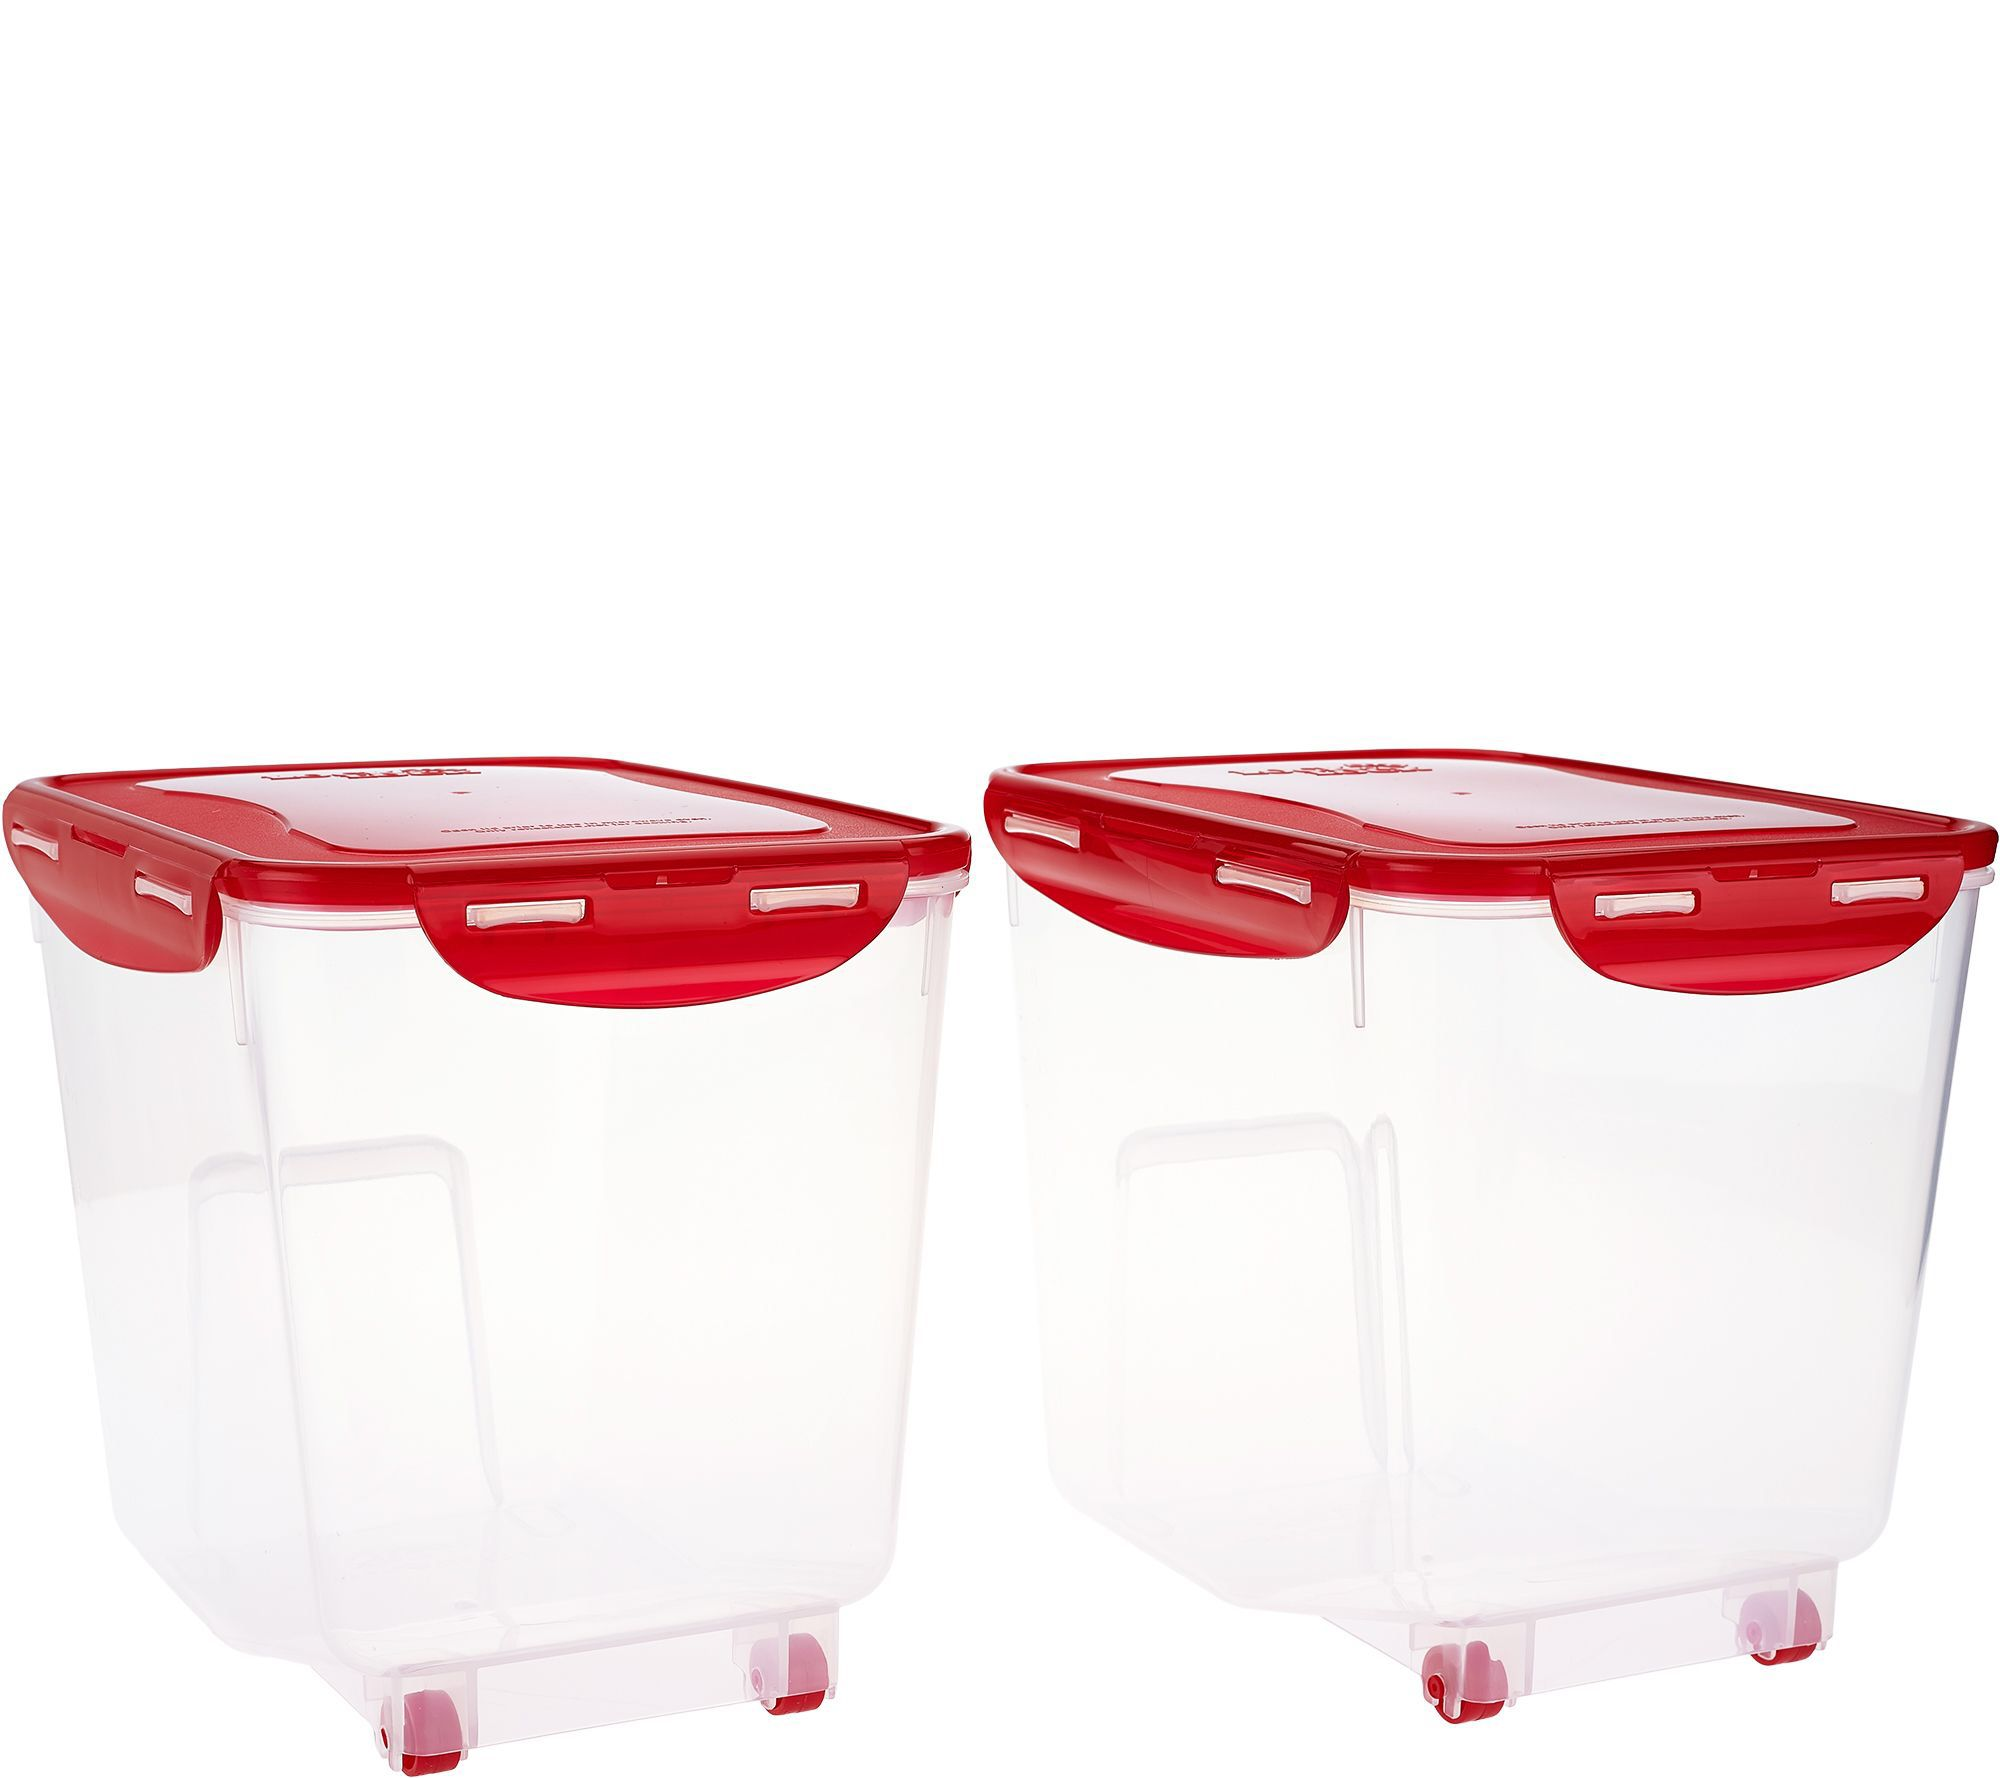 Lock & Lock 2pc Bulk Storage Bins w/ Wheels